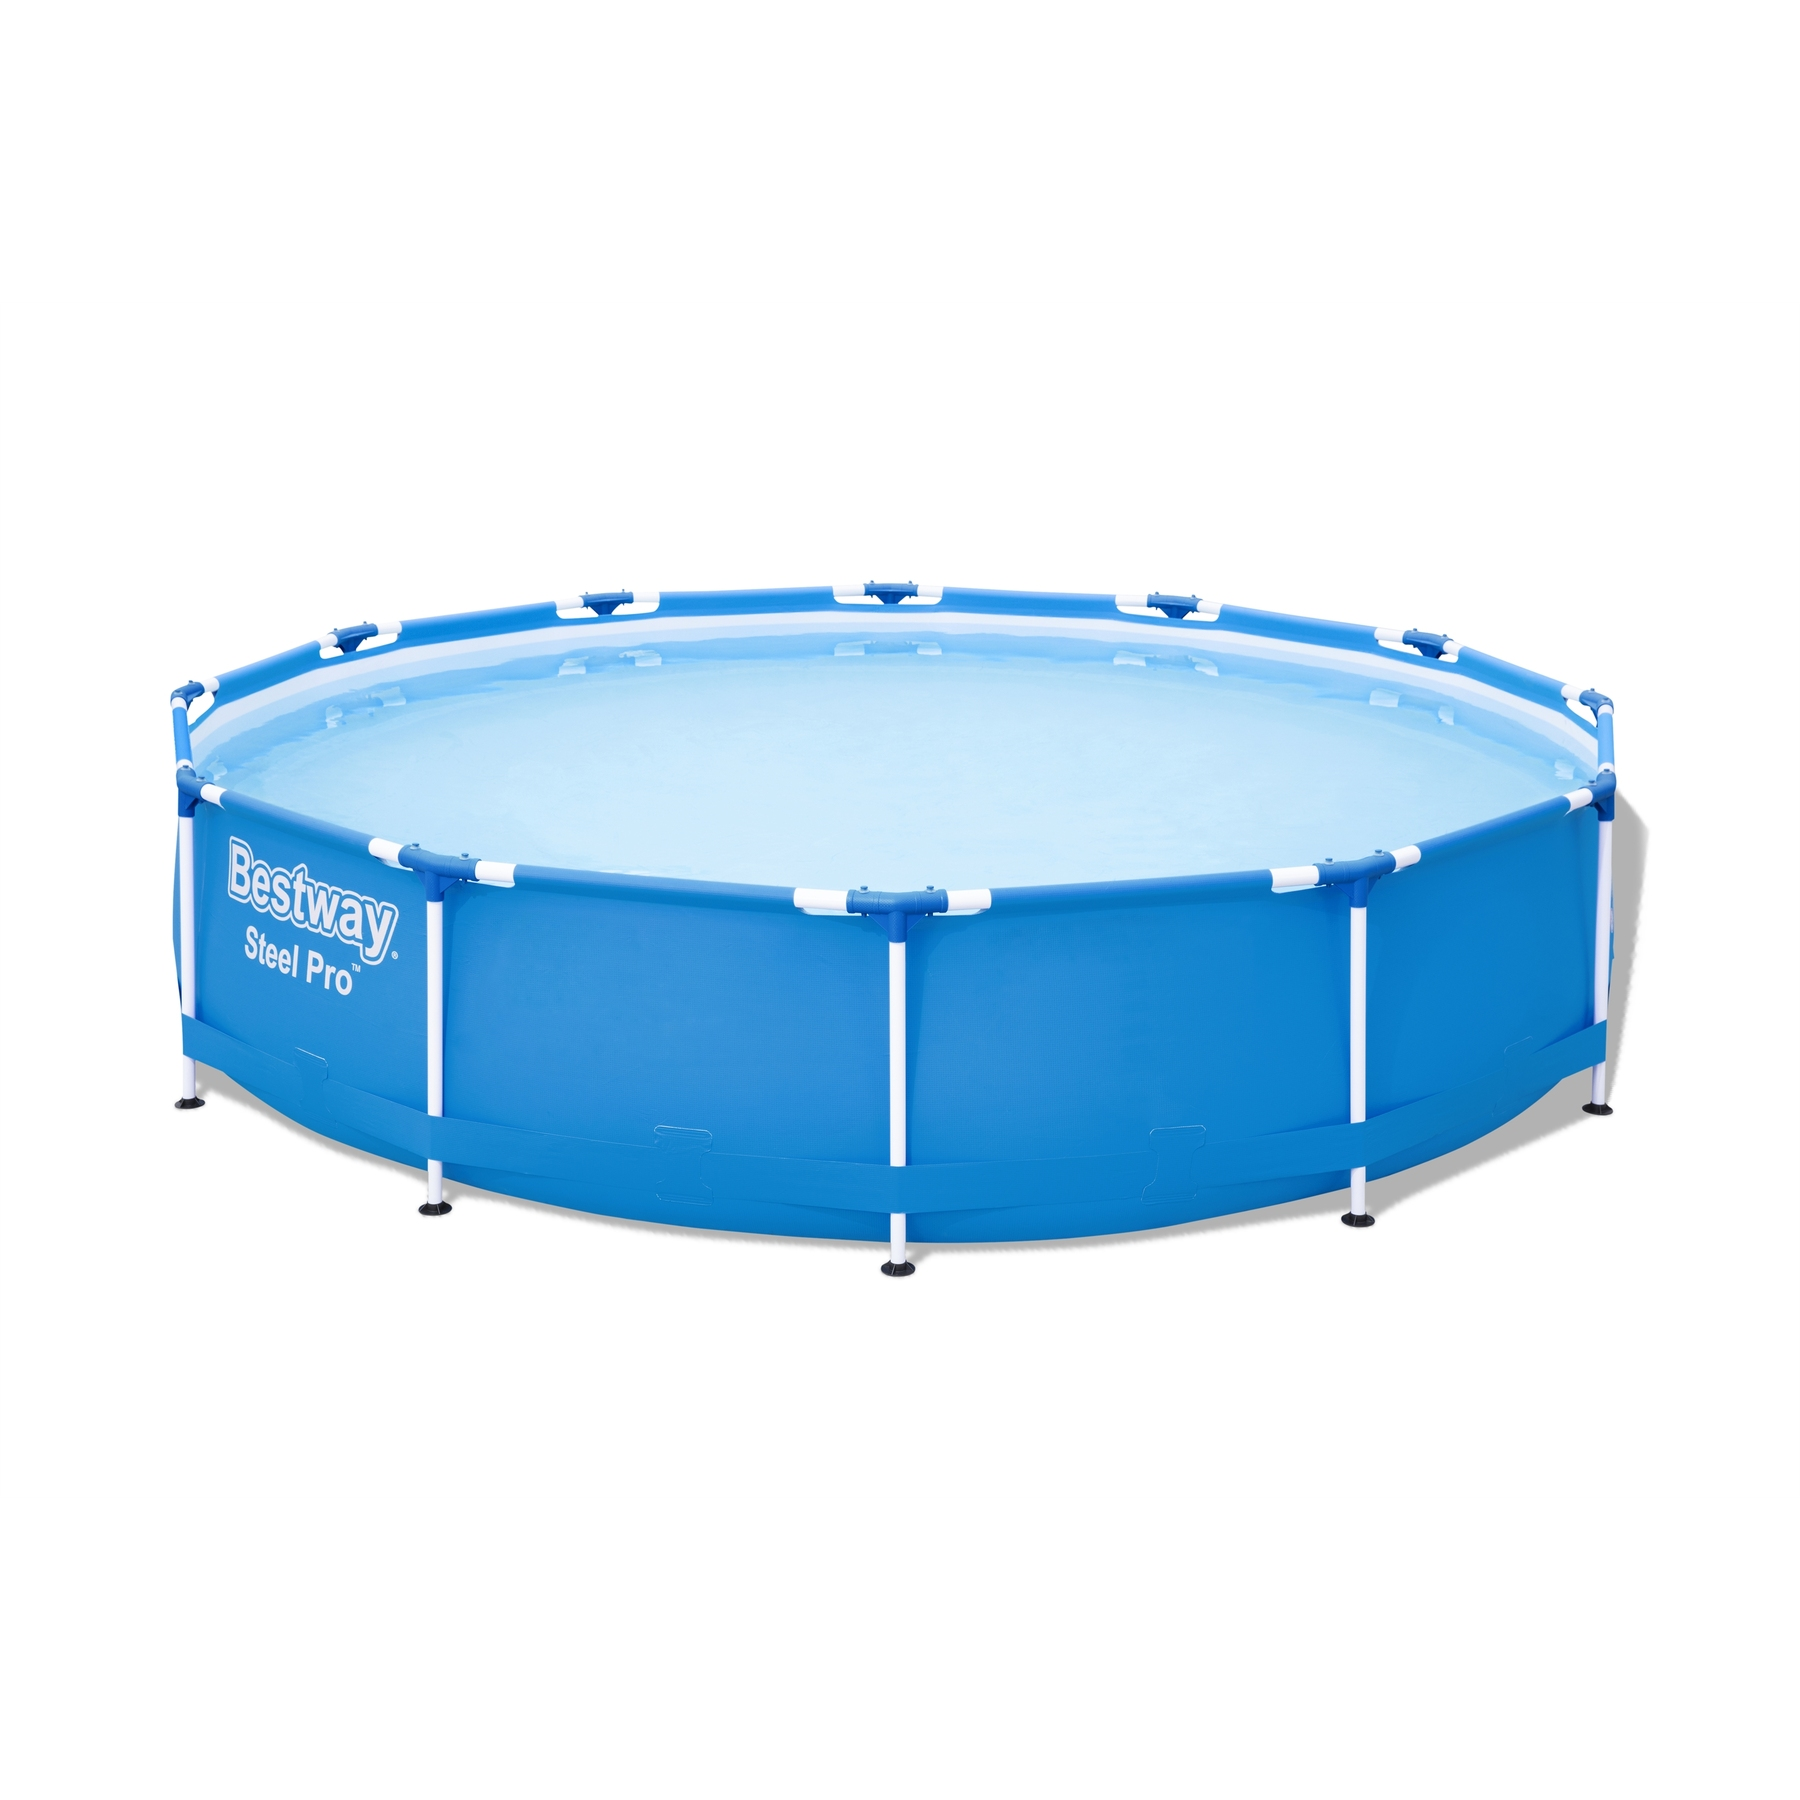 Scaffold Round Pool Bestway, Size 366x76 Cm, Outdoor Swimming Pool, Summer, For Garden, Summer, Leisure, Item No. 56706